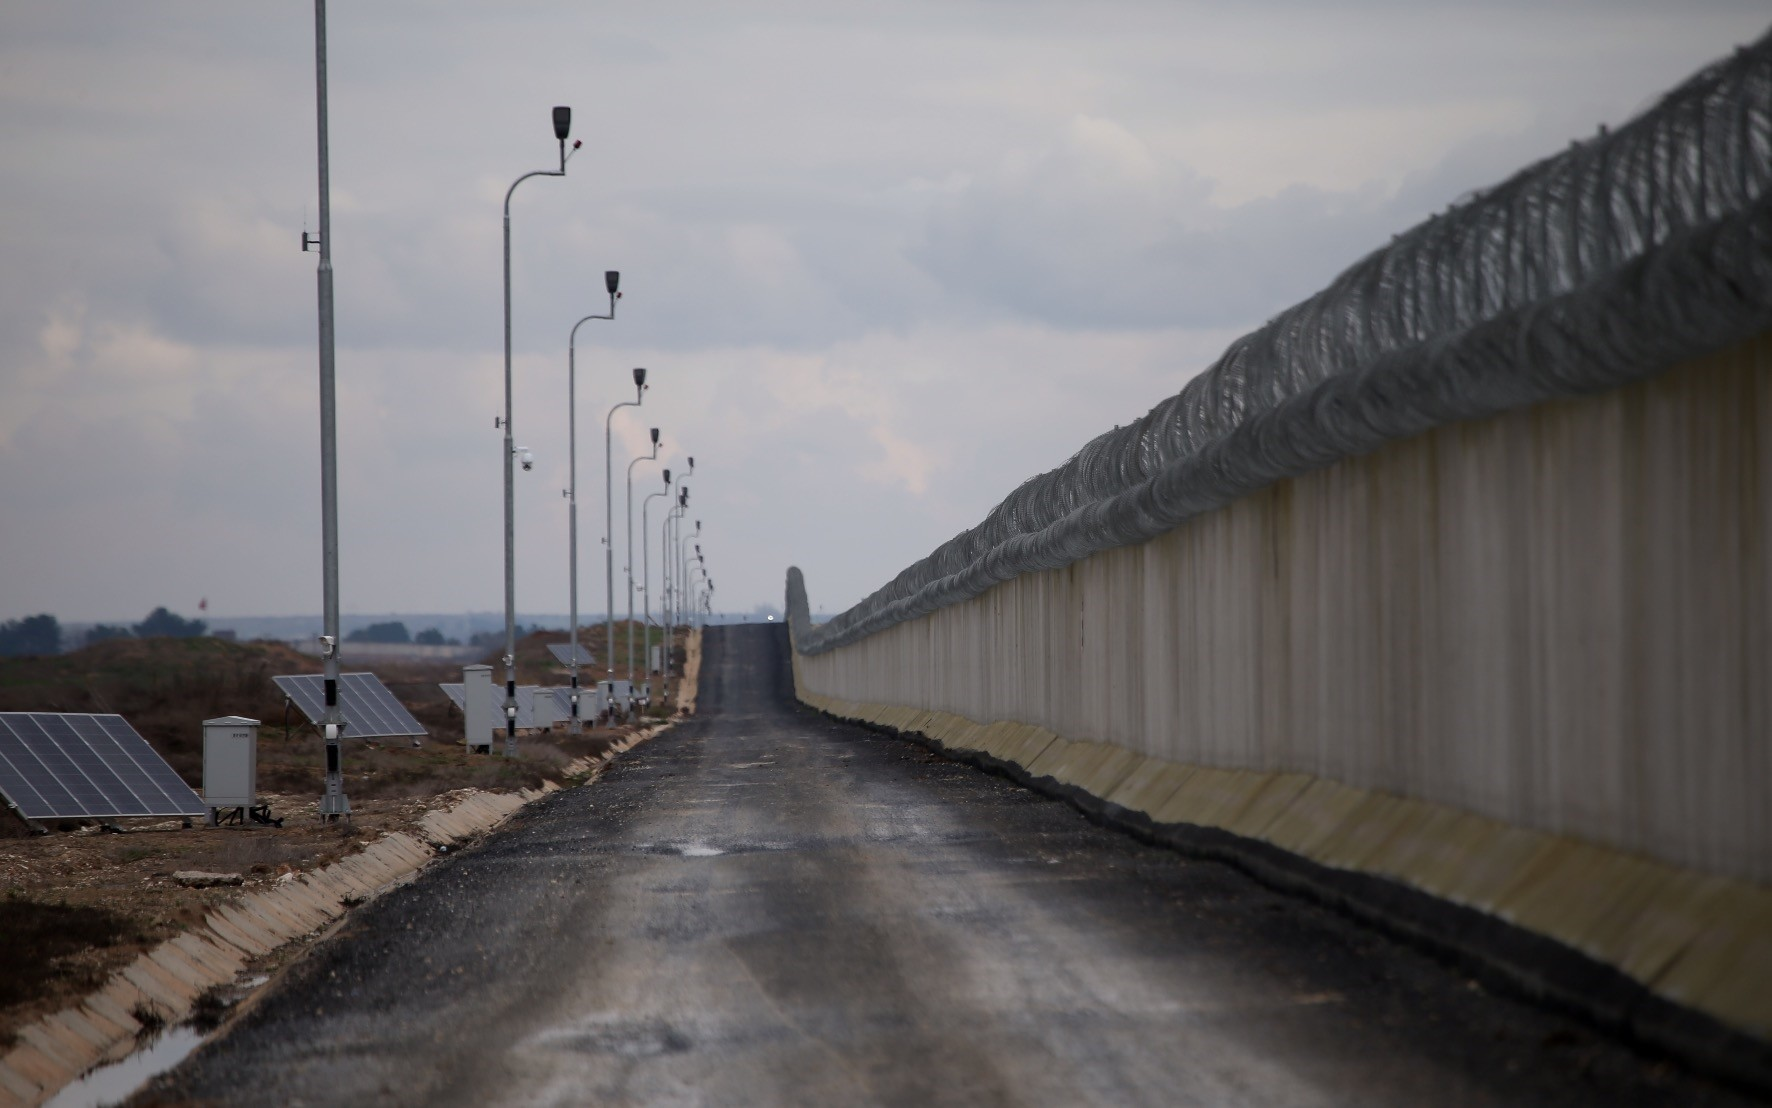 The new  high-tech system, along with a modular concrete wall erected to curb illegal crossings by smugglers and terrorists, is expected to work as an added measure for security along the countryu2019s border.